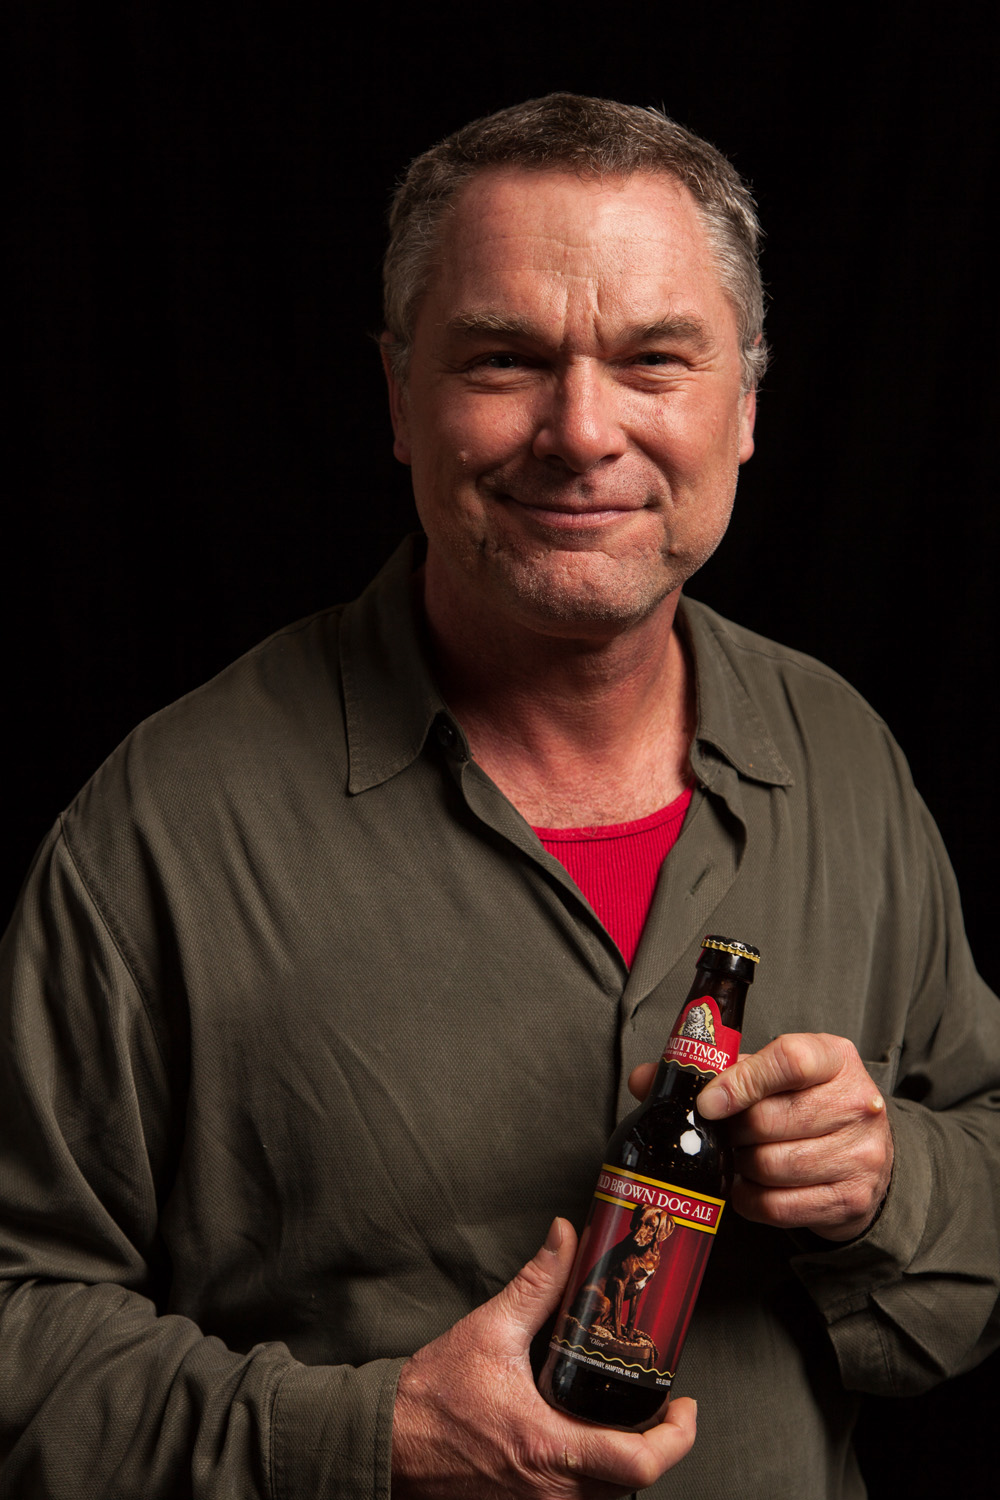 Peter Egelston, owner of the Portsmouth Brewery Portsmouth, NH Established in 1991 and Smuttynose Brewing Co. Hampton, NH Established in 1994